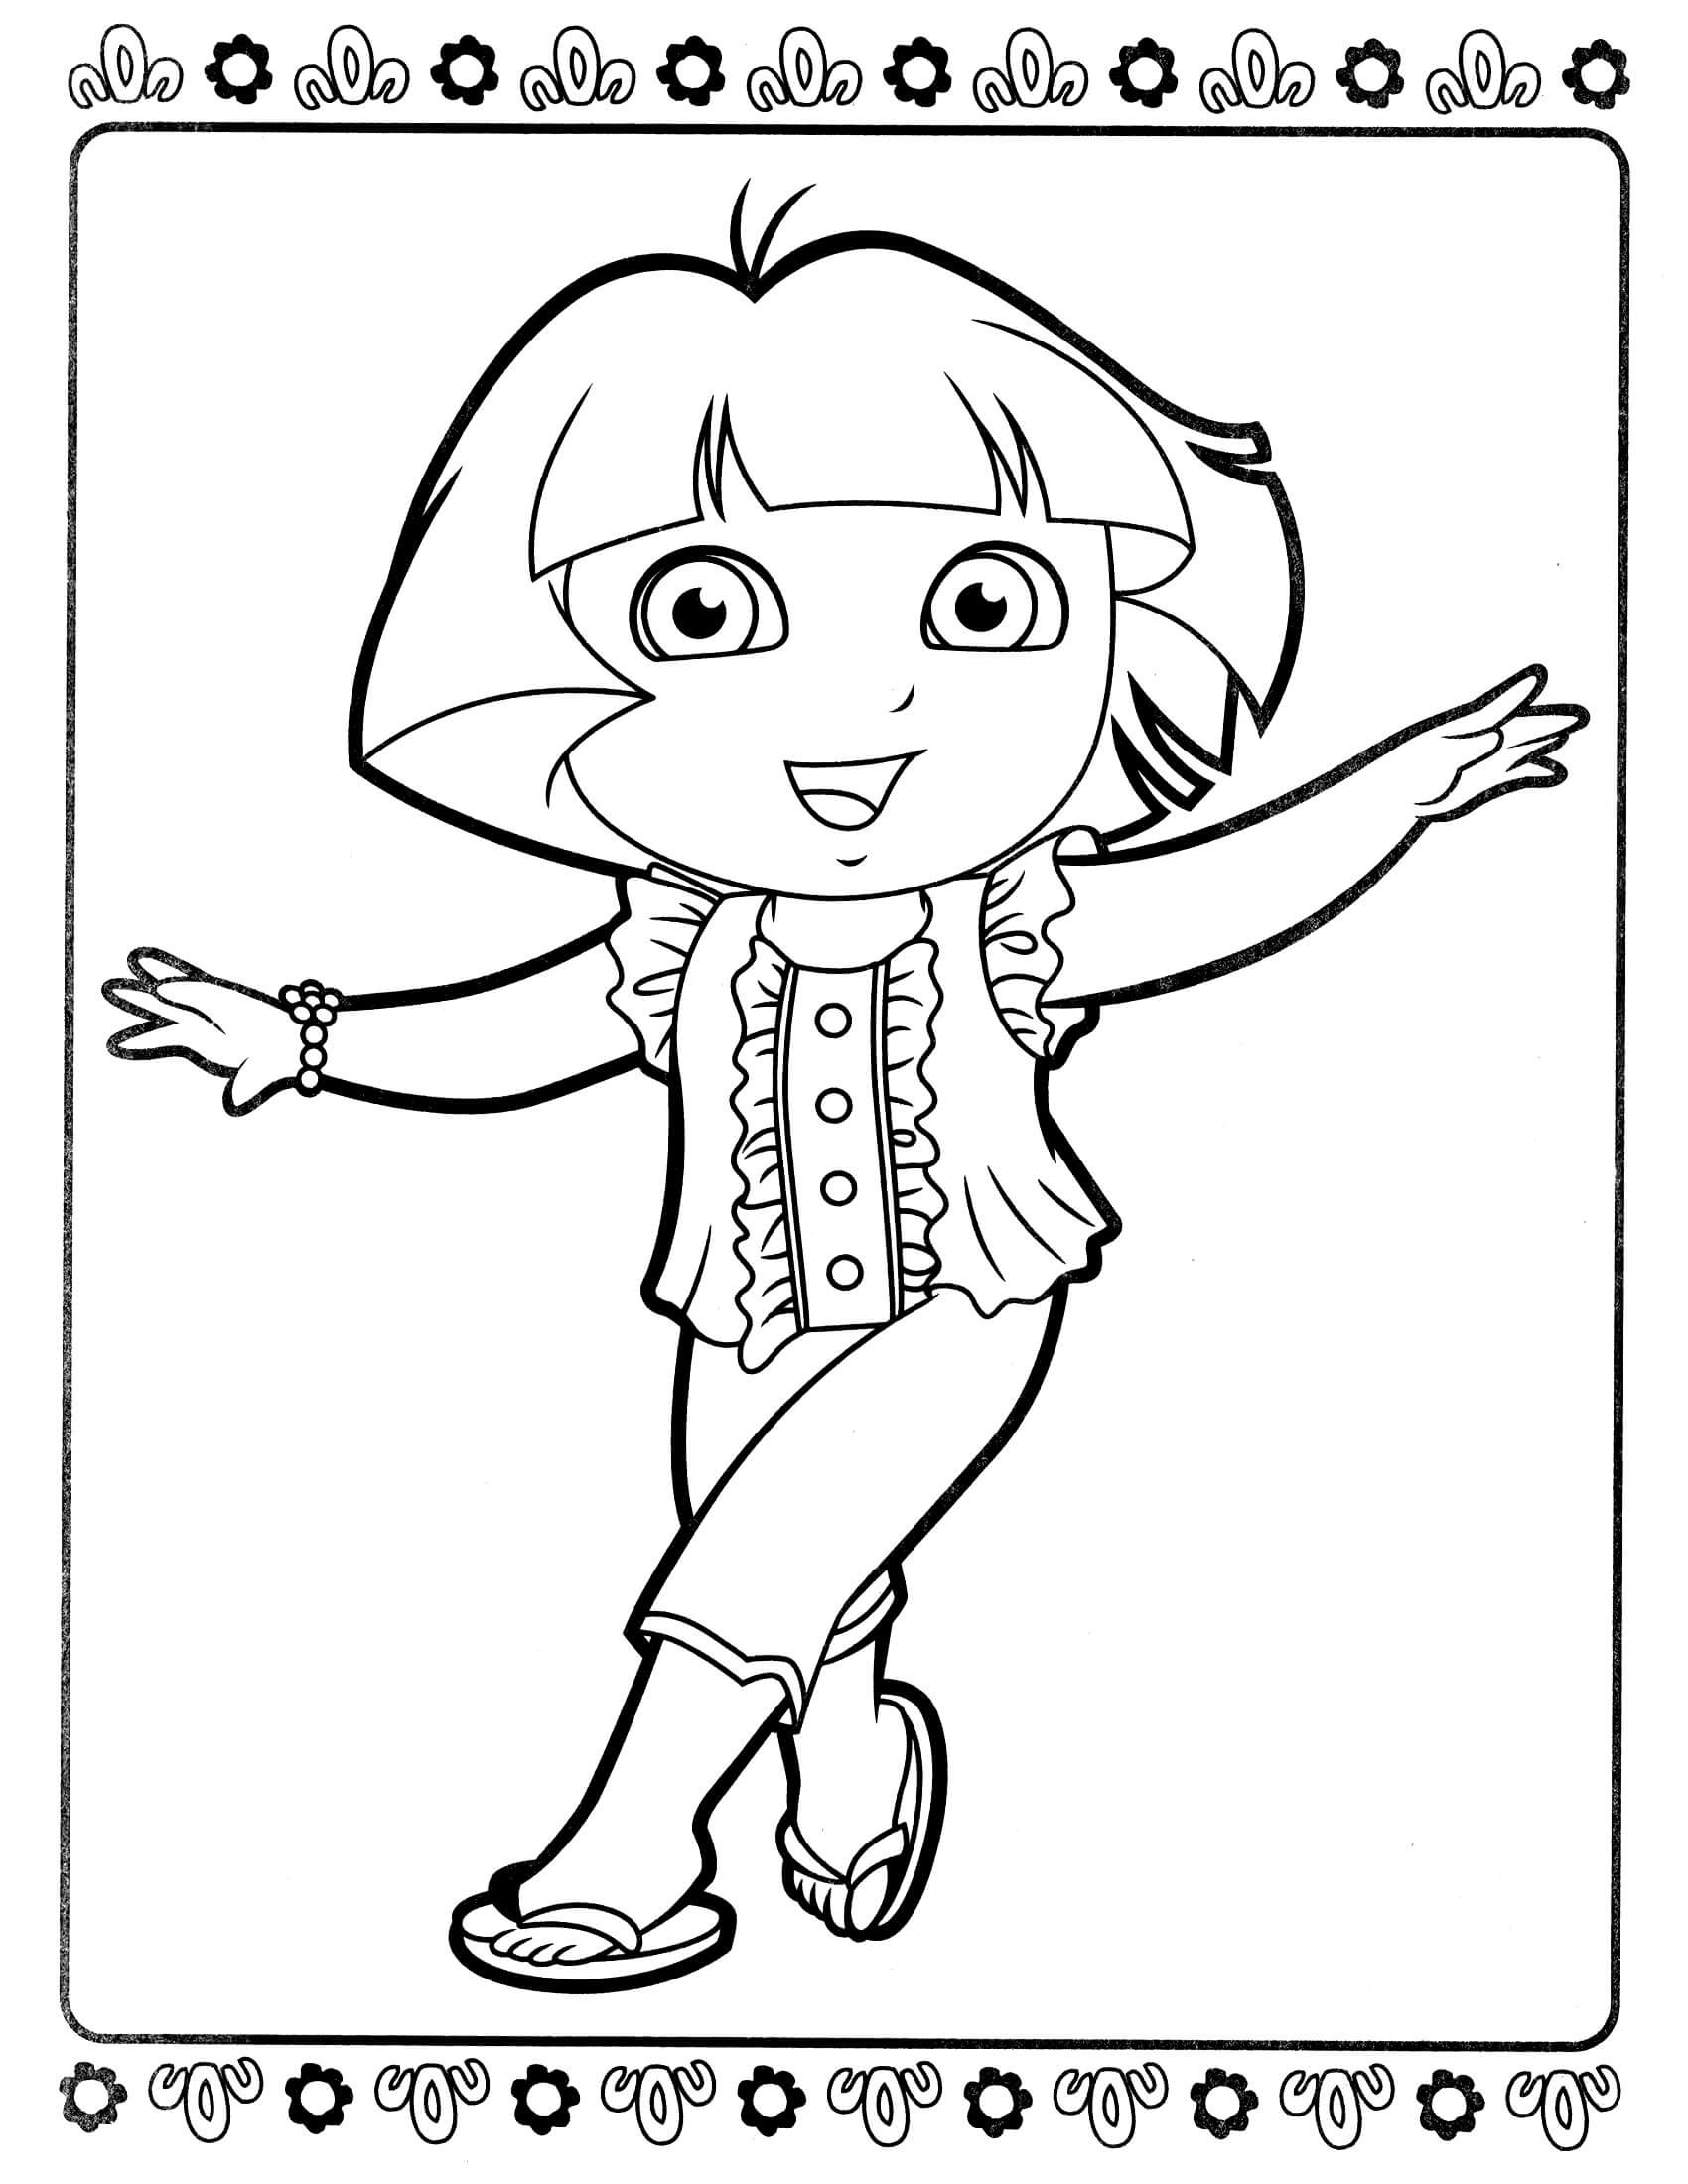 Dora Coloring Pages For Girls  Dora 56 Coloringcolor